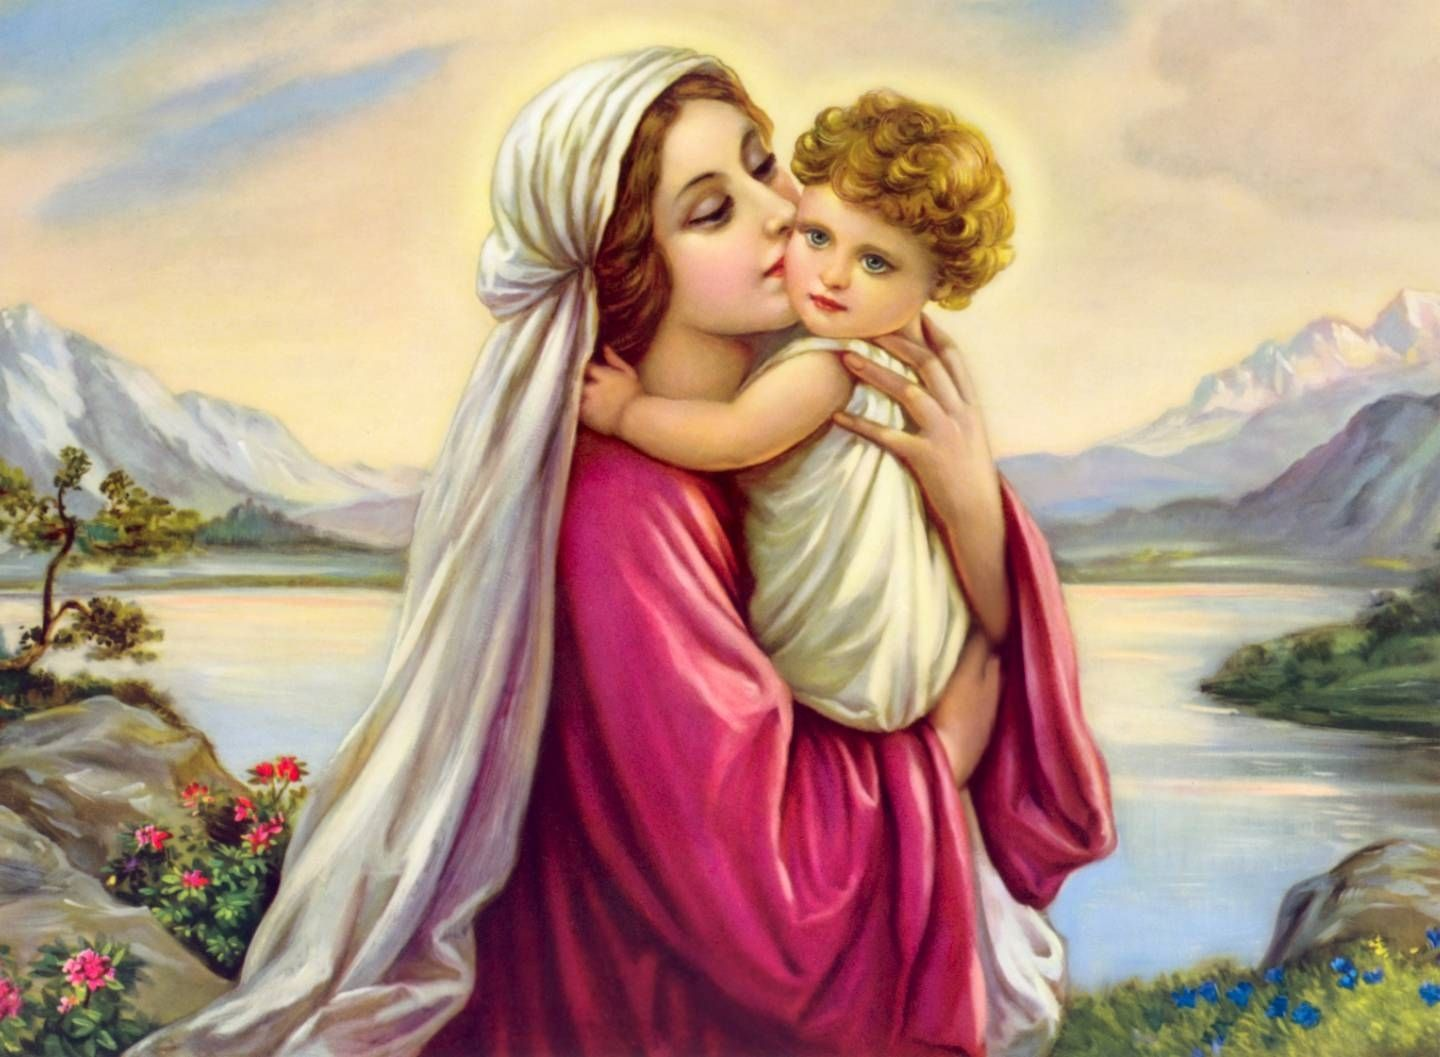 Mother Mary Statues 959 655 Virgin Mary Wallpapers 32 Wallpapers Adorable Wallpapers Mother Mary Wallpaper Mother Mary Images Jesus Wallpaper